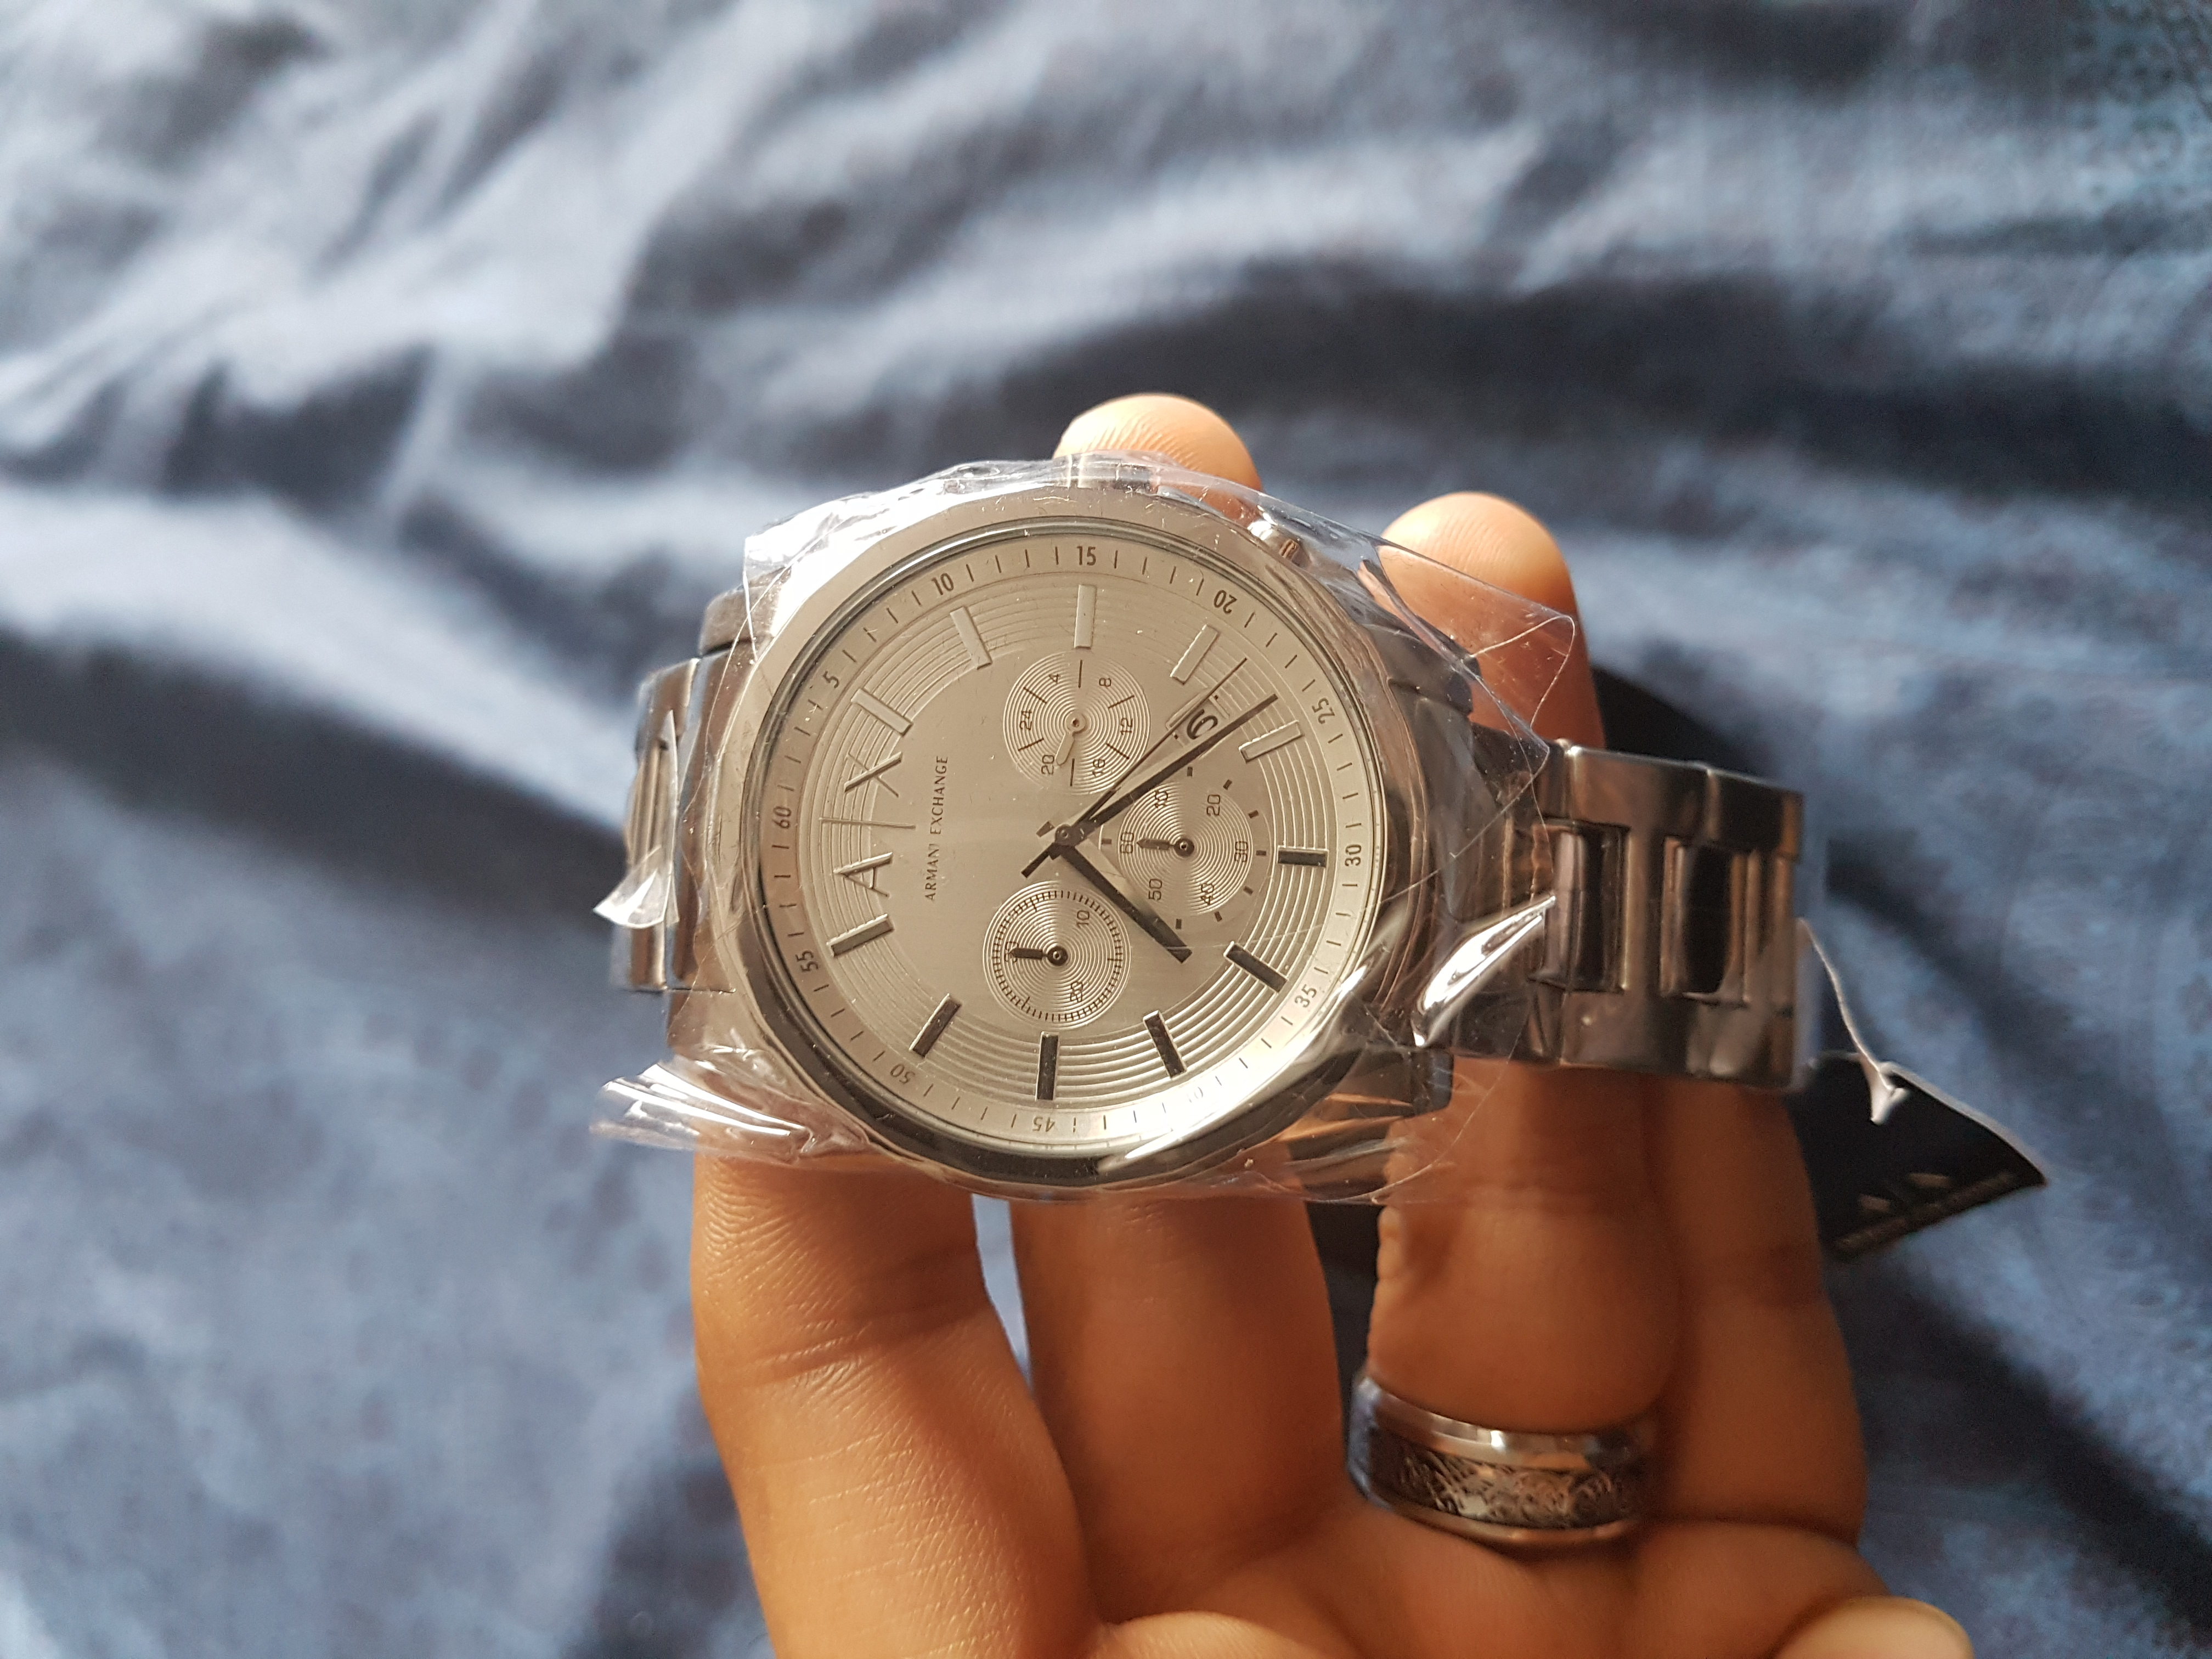 e8e9b61979598 I love this watch. excellent finishing of silver color. this is third  addition in my Armani exchange collection and I love it most.  choronographic dials ...